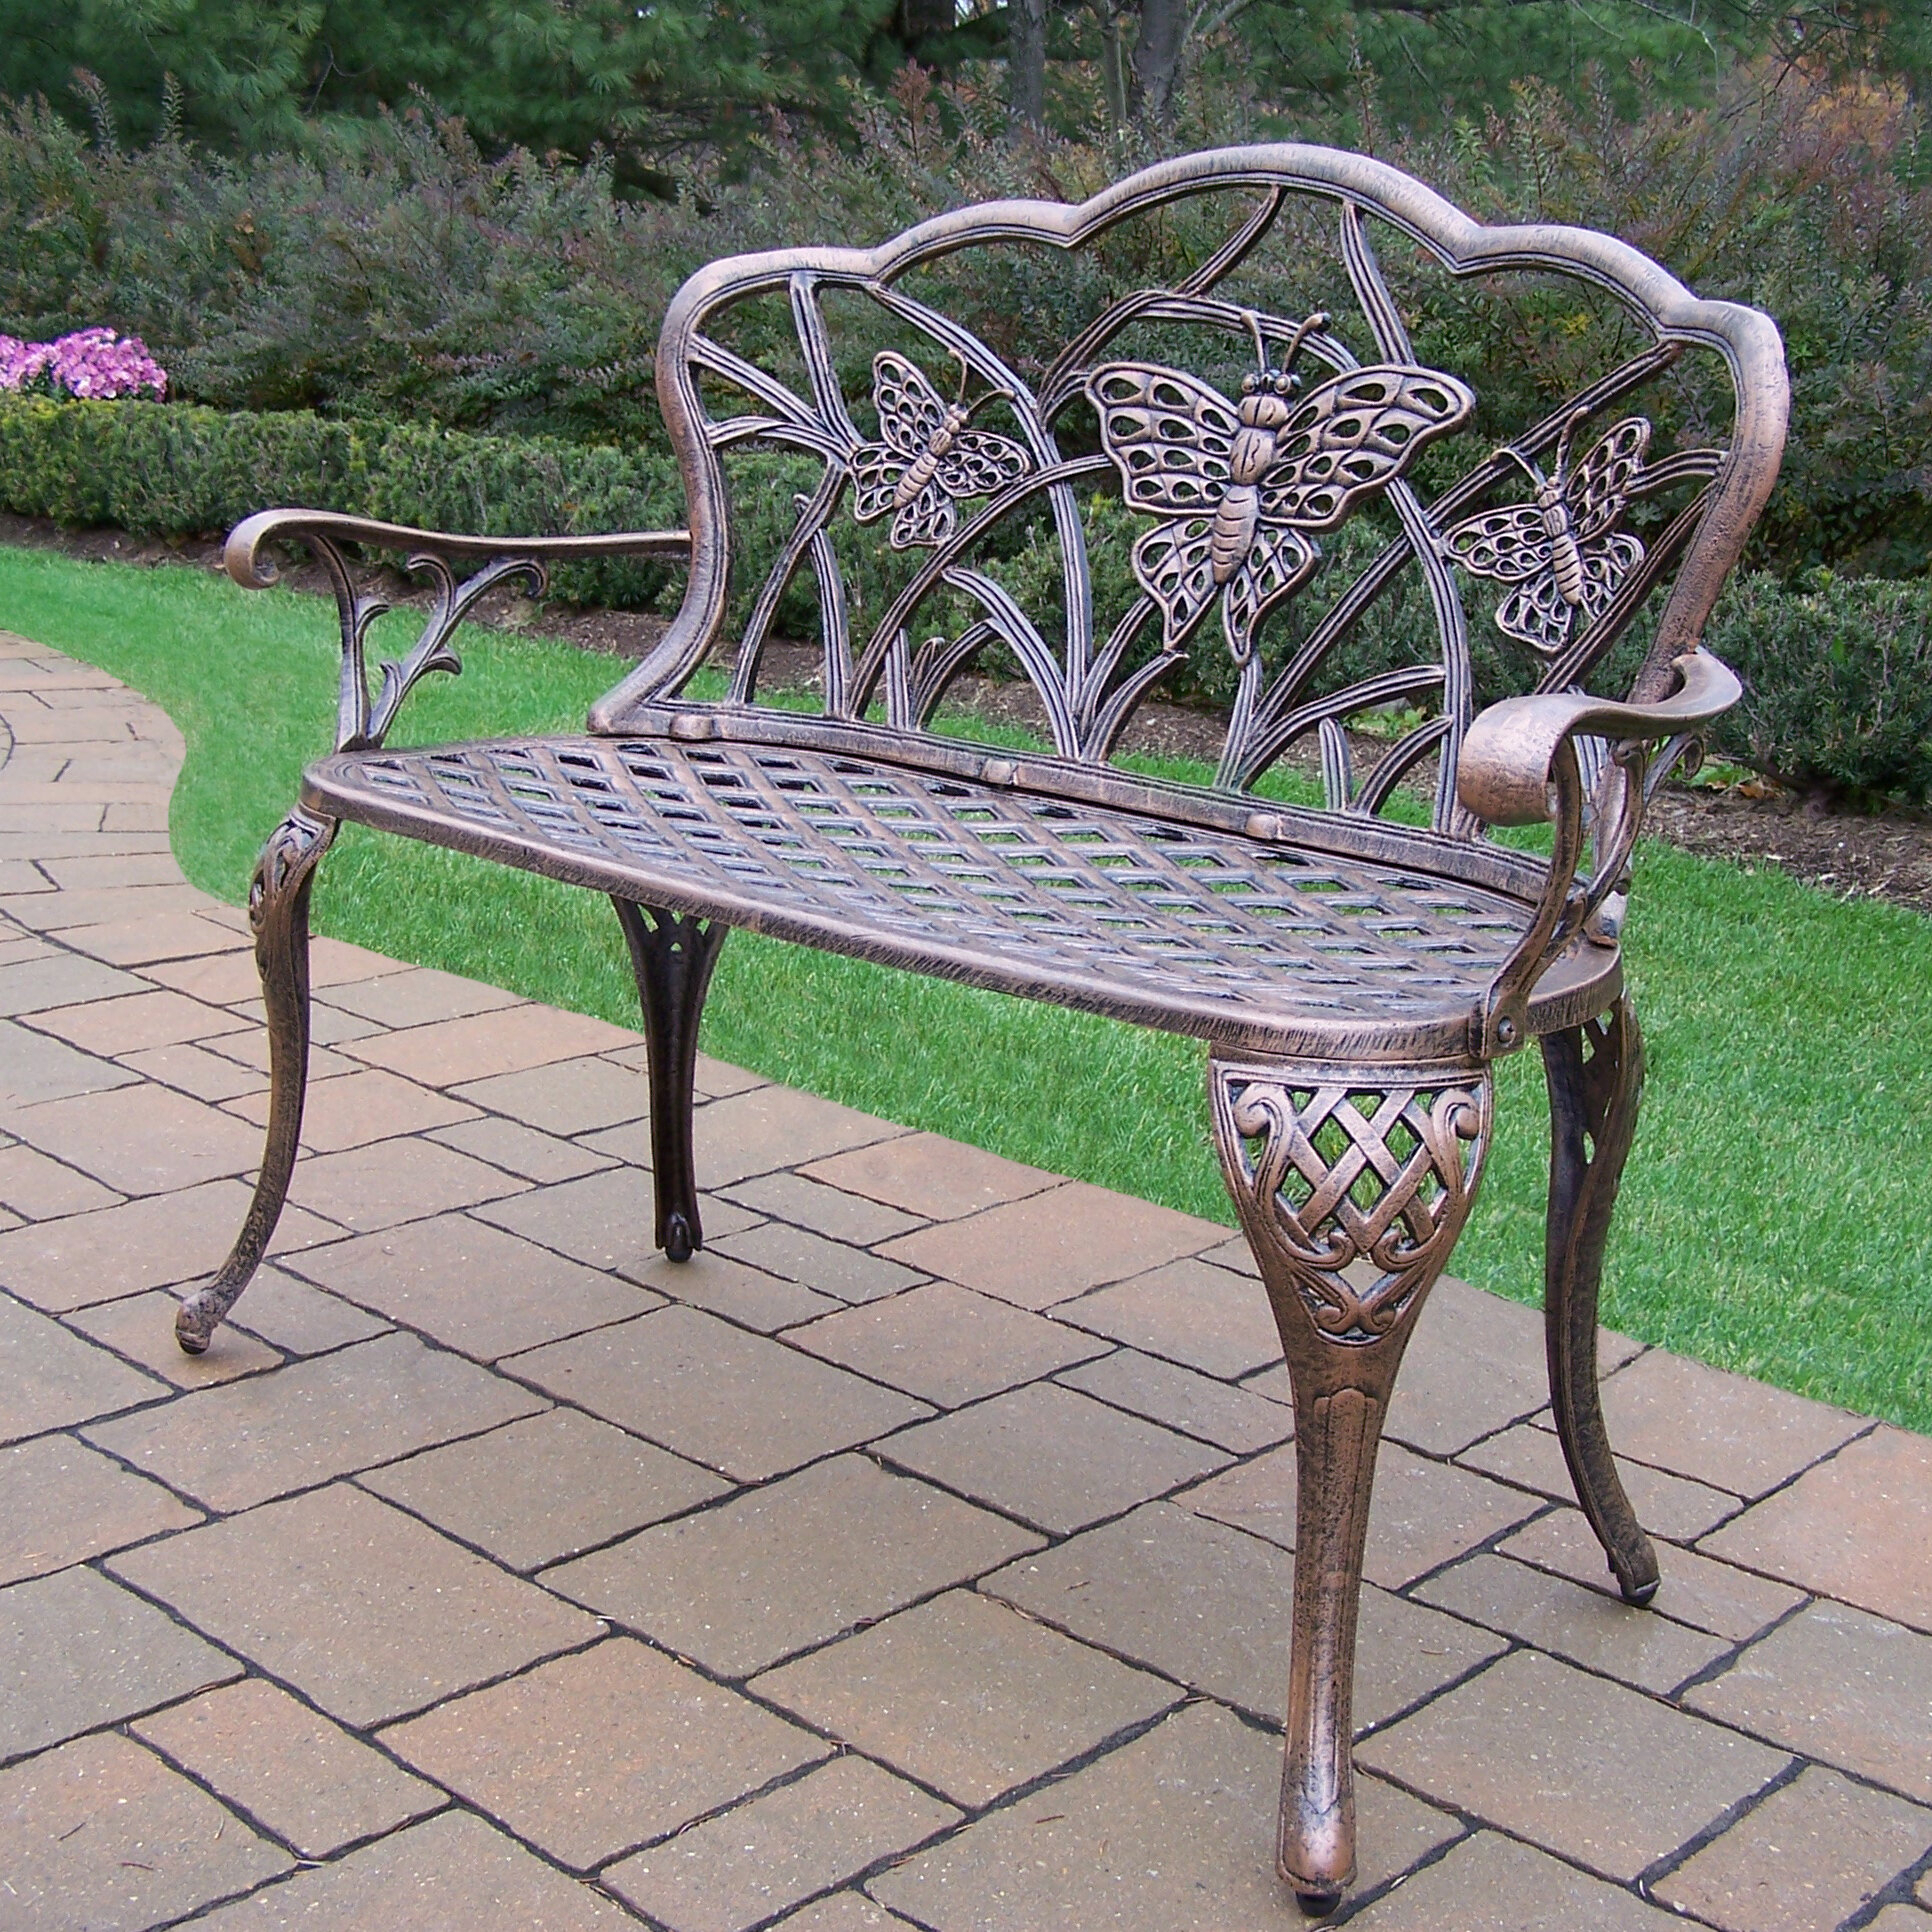 Wensley Aluminum Garden Bench Pertaining To Caryn Colored Butterflies Metal Garden Benches (View 22 of 25)